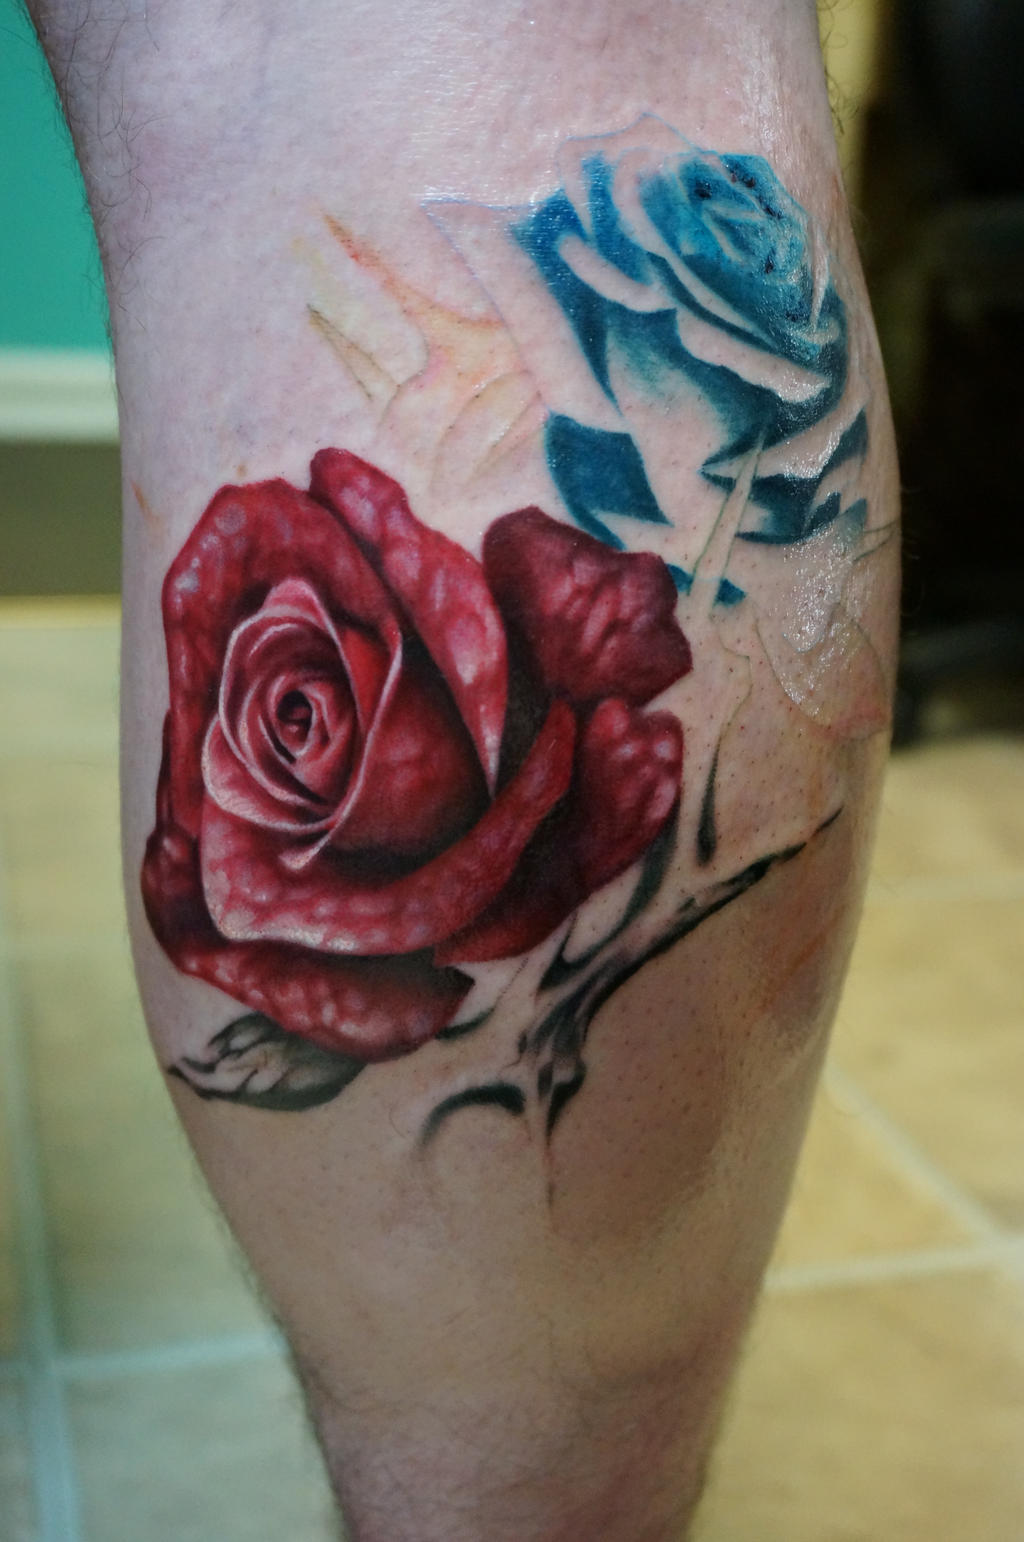 Thorny rose tattoo 1 by wisscout on deviantart for Rose with thorns tattoo